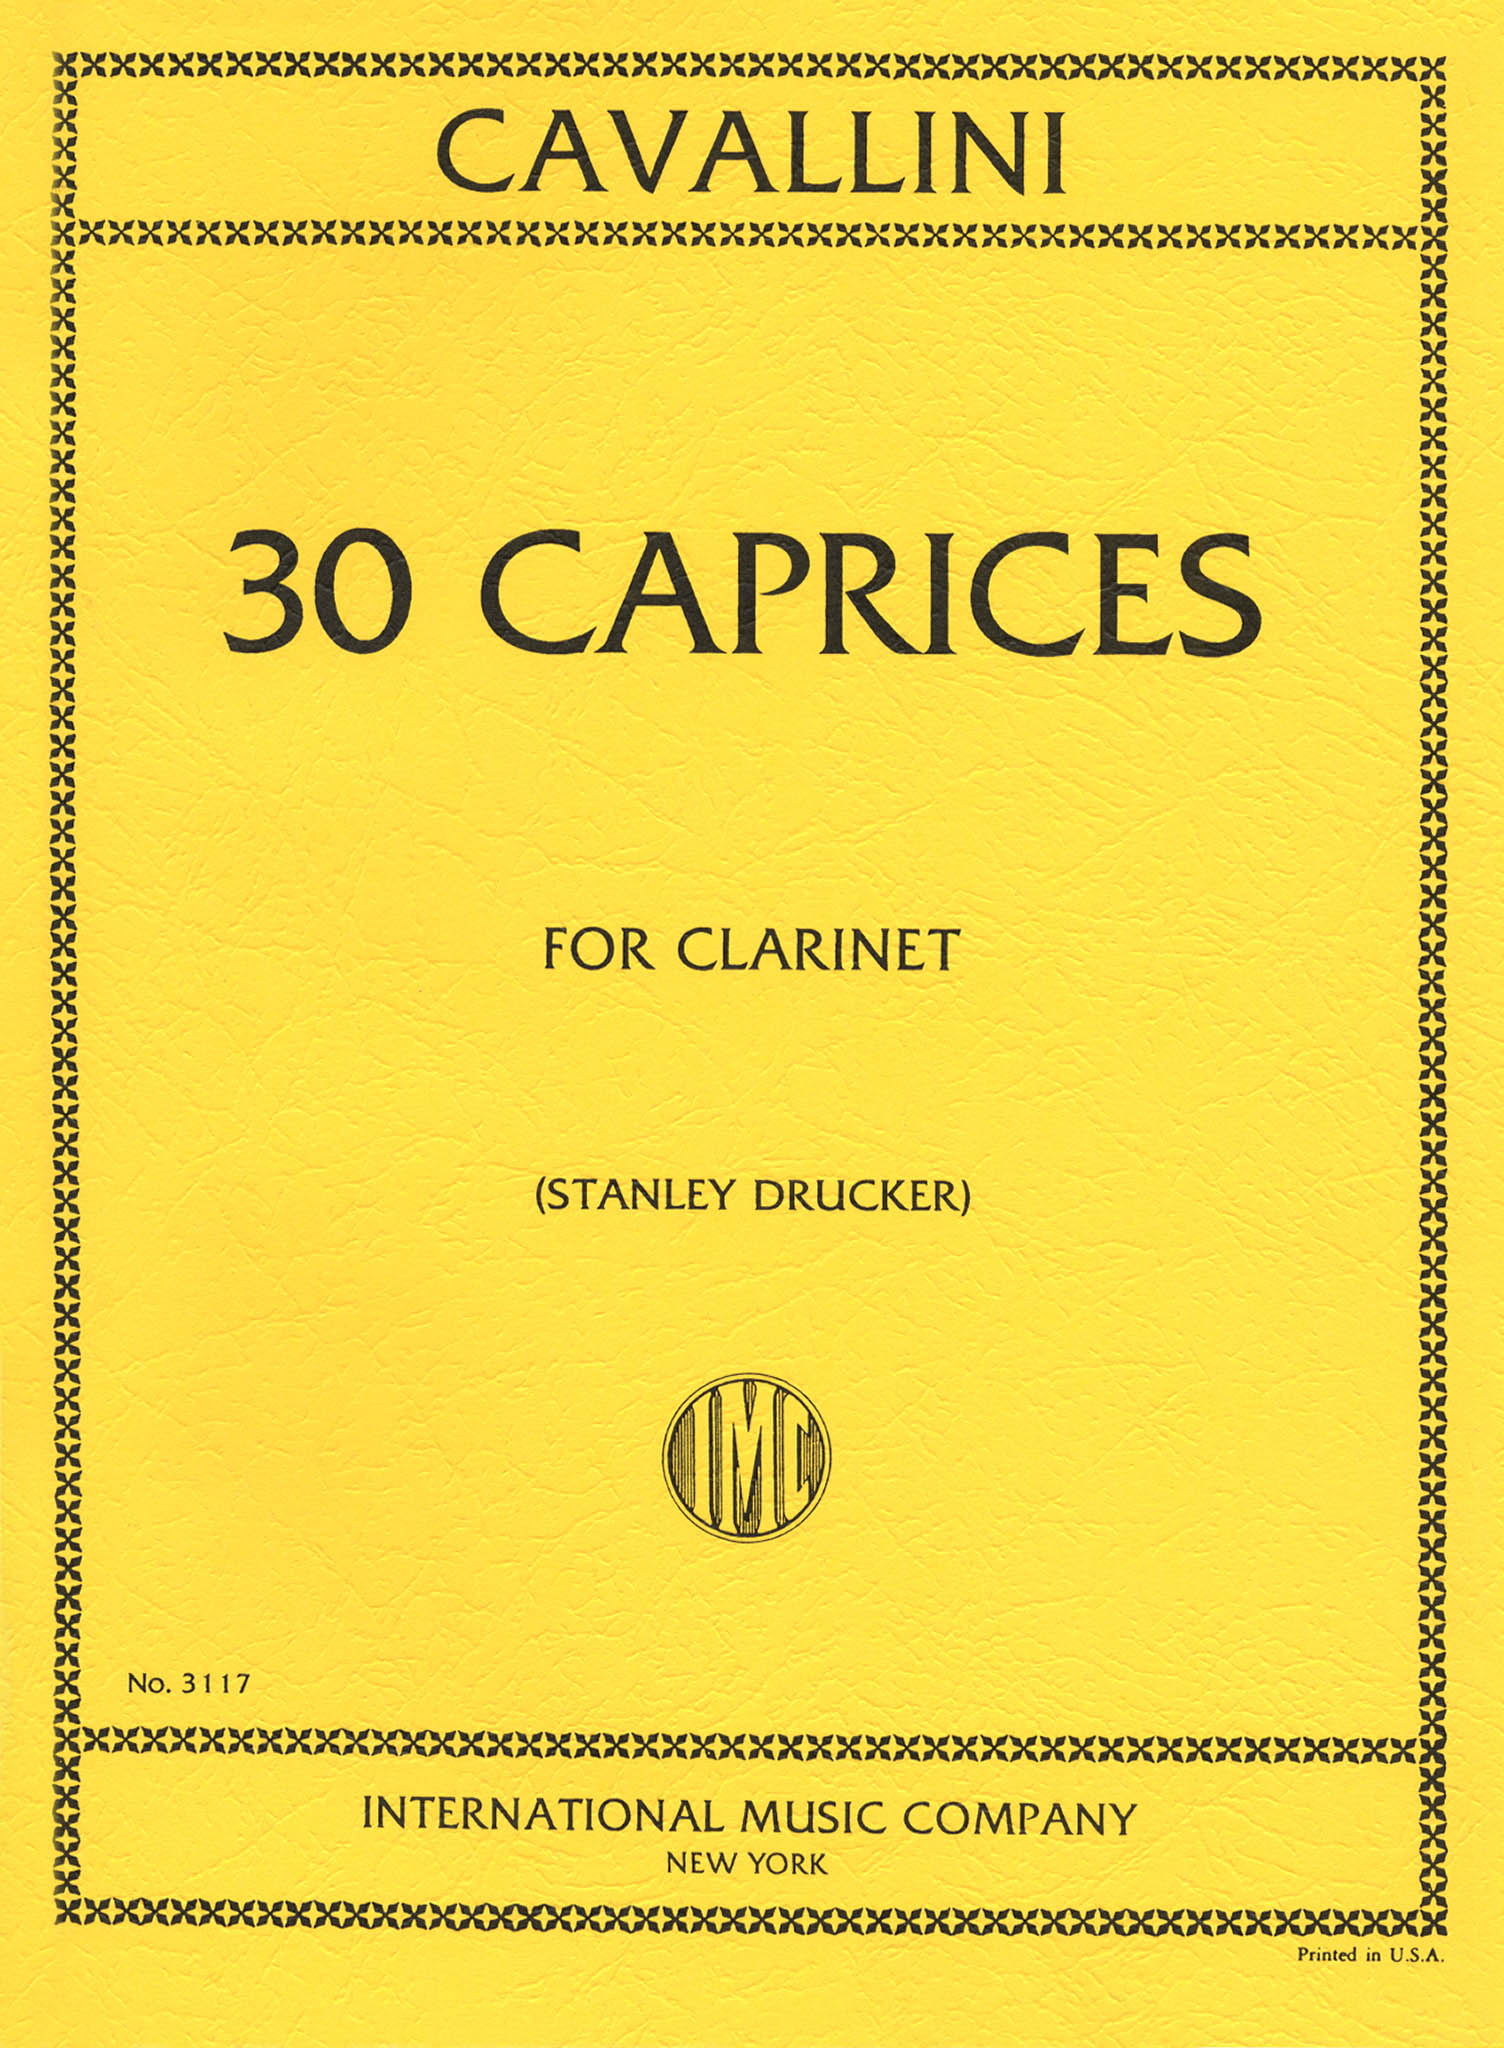 30 Caprices for Clarinet Cover